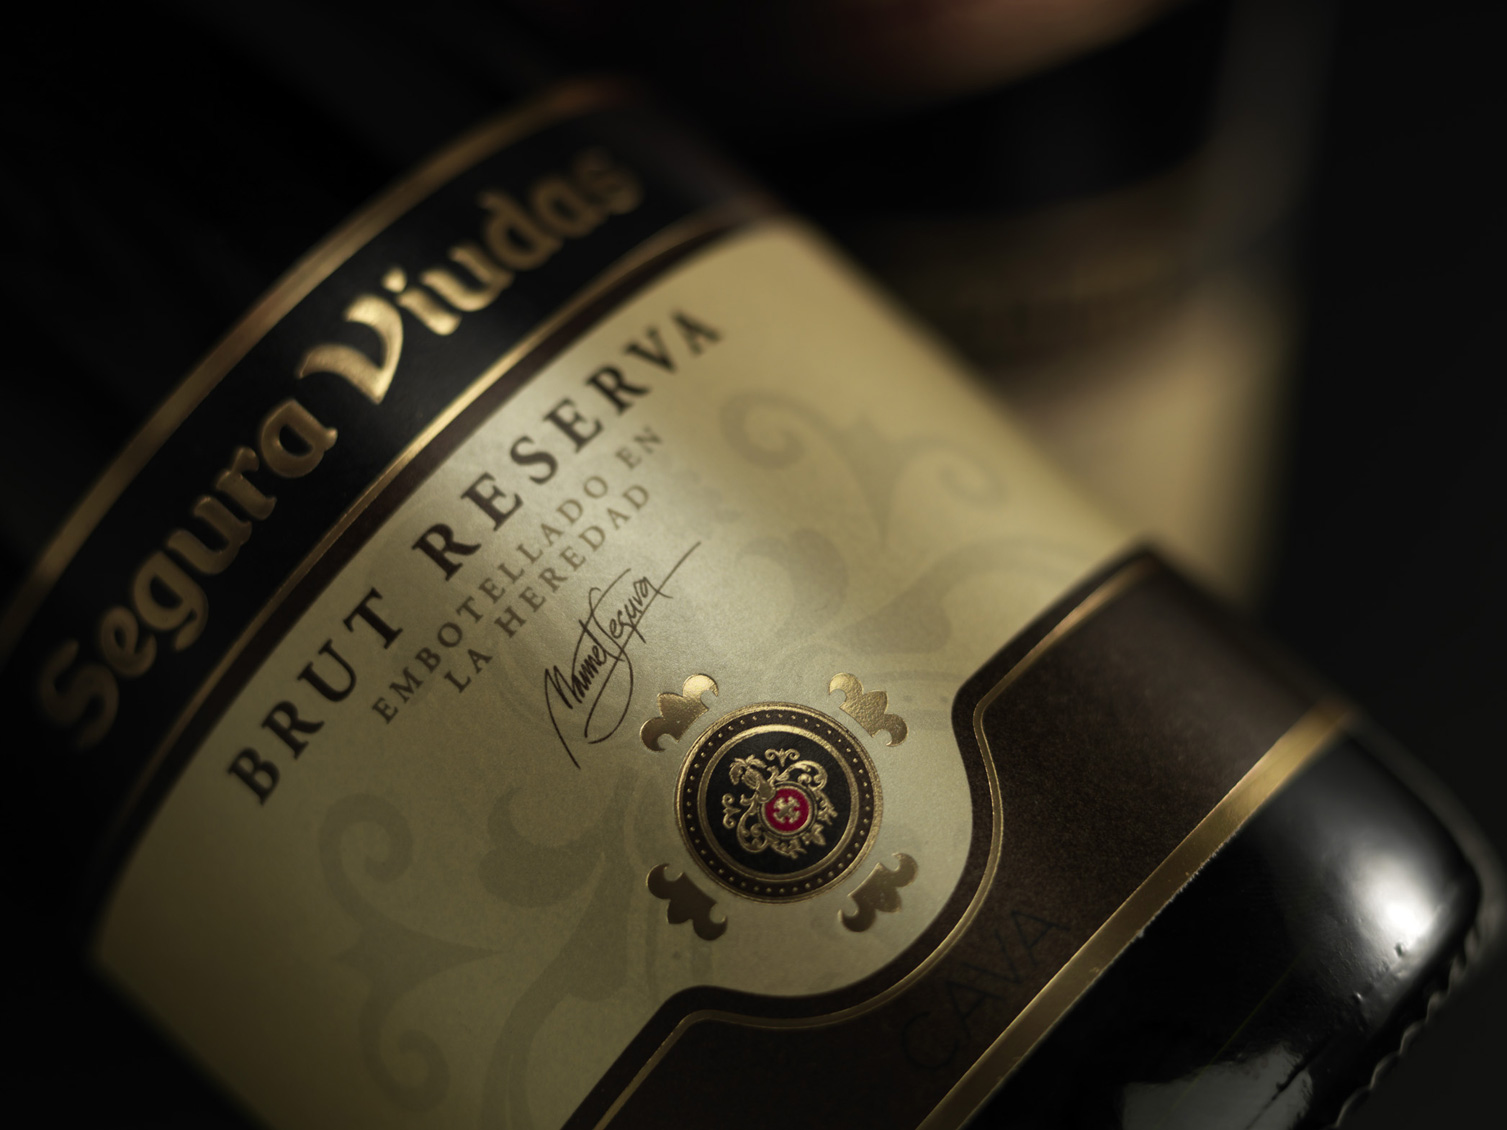 Variety, value set Spain's wine apart from others